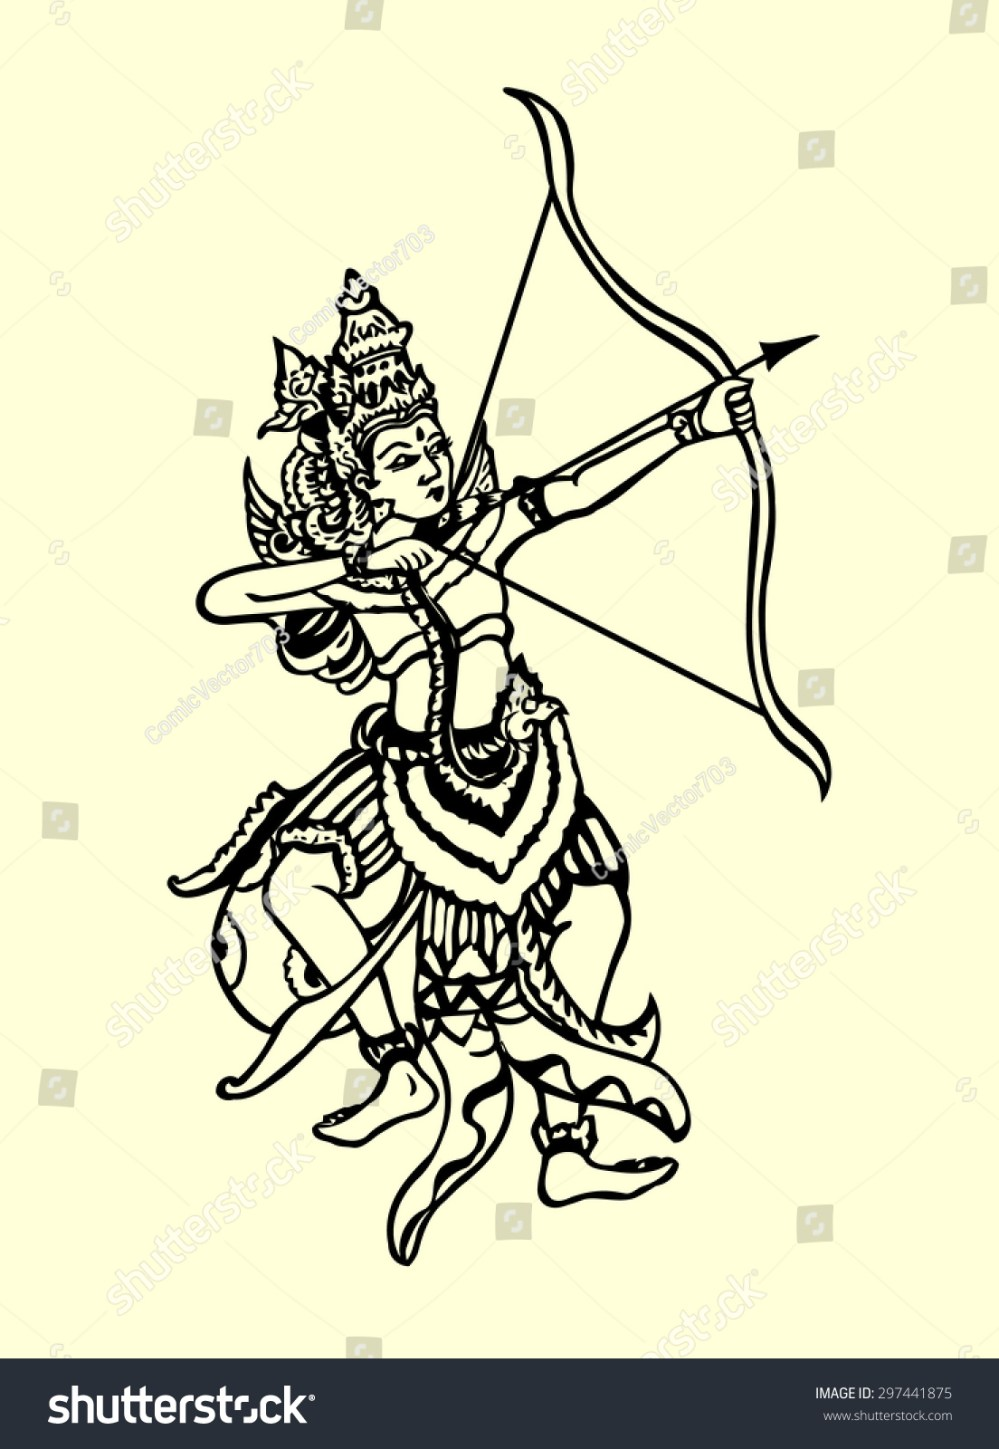 medium resolution of rama archery pose traditional hand drawing illustration style classic ramayana story book